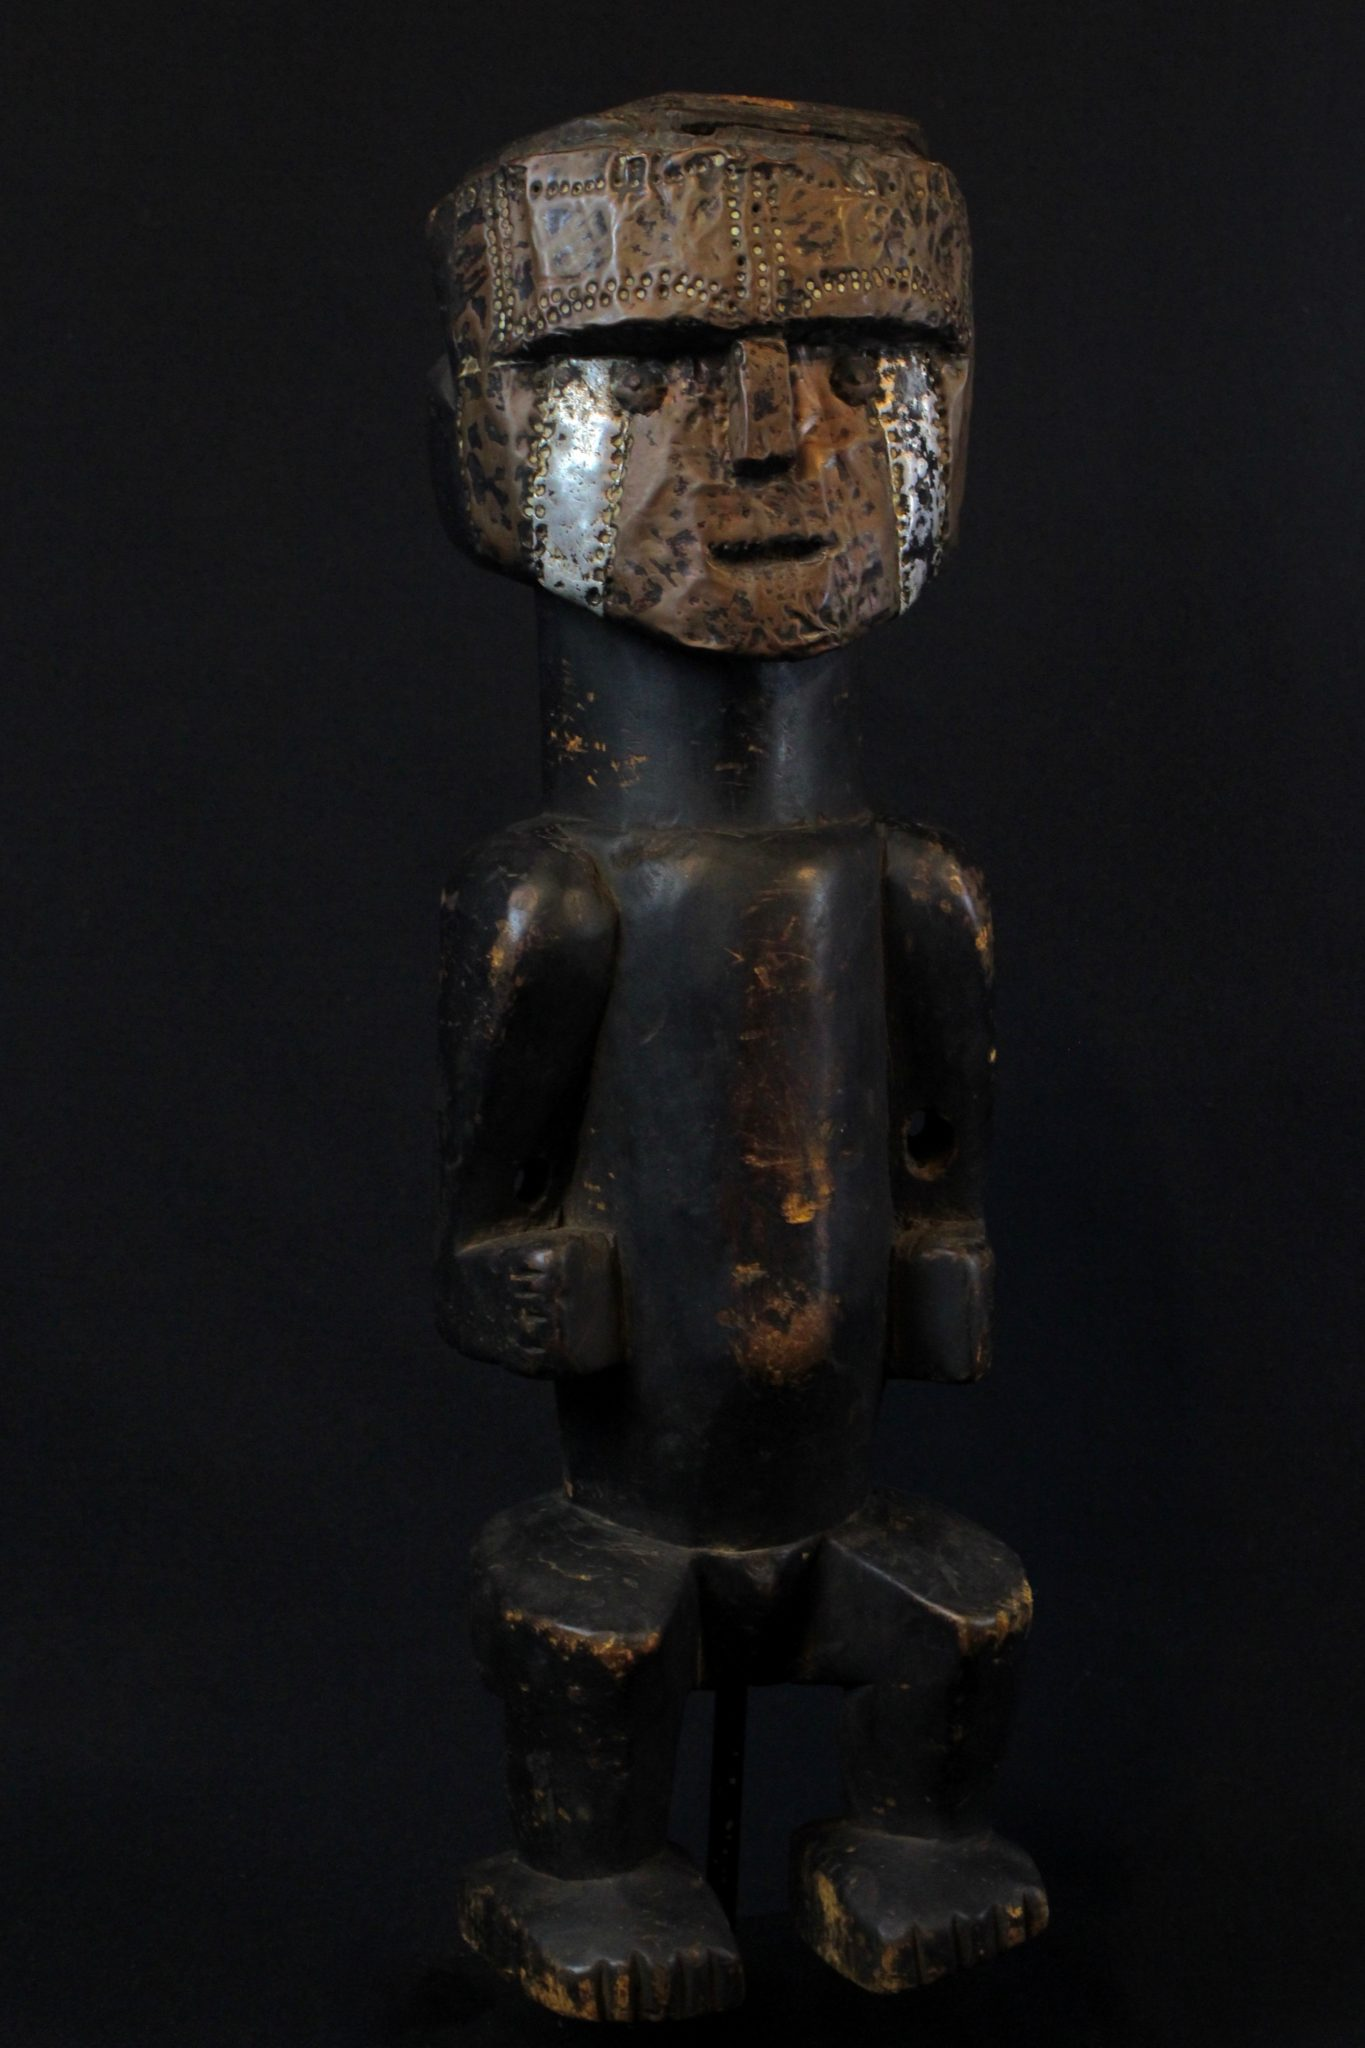 """Shaman Effigy Statue, Sumatra Island, Indonesia, Batak tribe, Early to mid 20th c, Wood, metal, pigment, patinated with use and age. For protecting the shaman during healing rituals. 15 ¾"""" x 5"""" x 4 ¾"""", $800."""